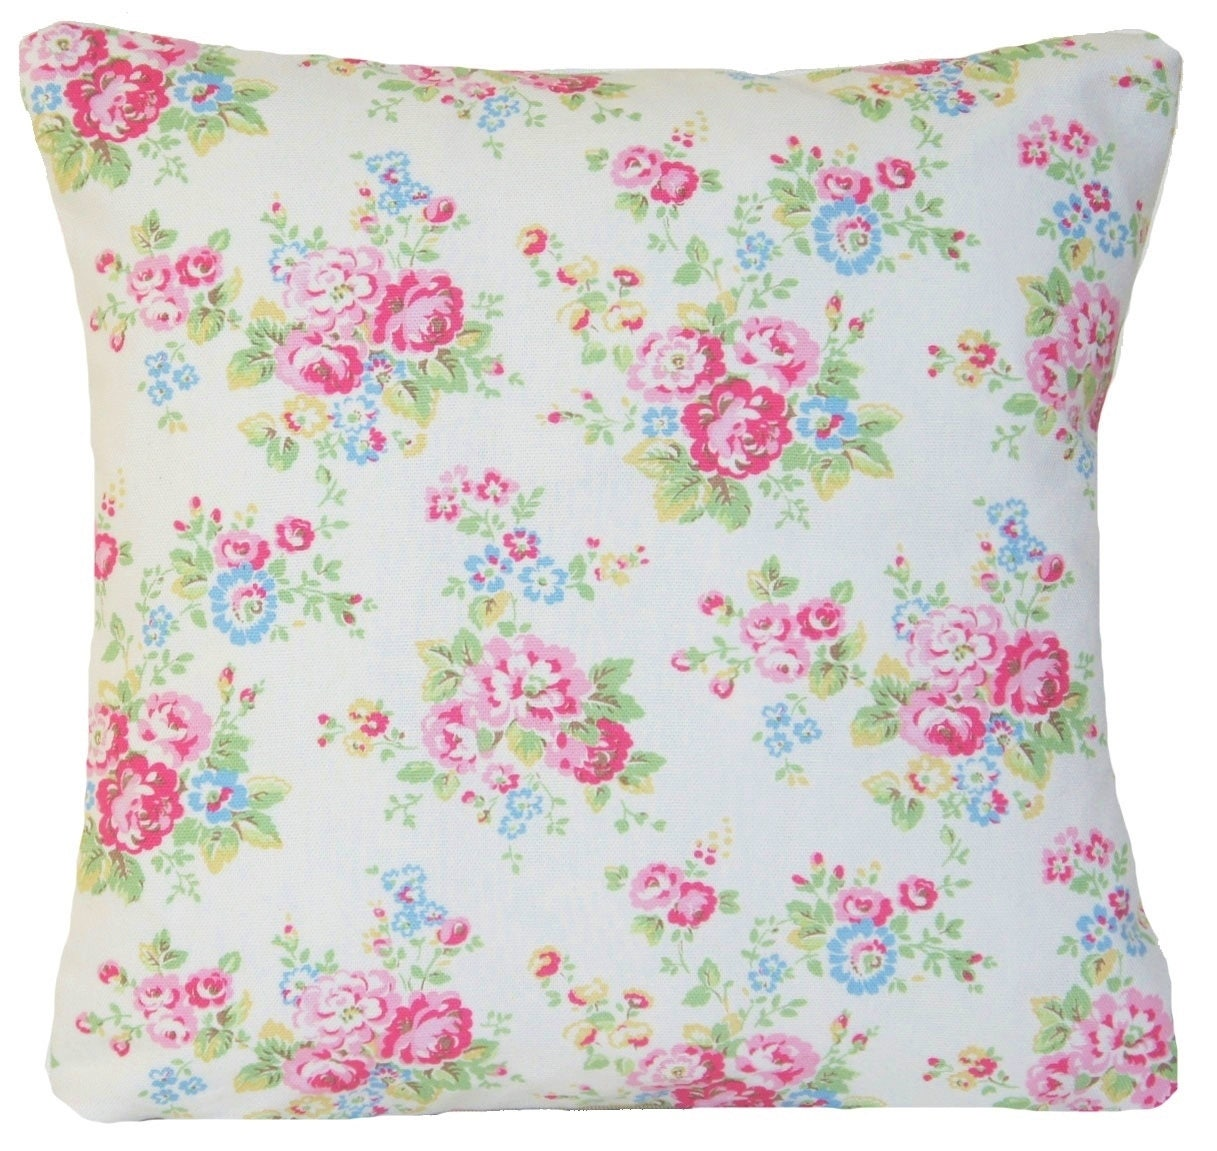 Floral Cushion Cover Floral Cath Kidston Fabric Pillow Throw Case Pink Red Green Cotton Fabric Printed